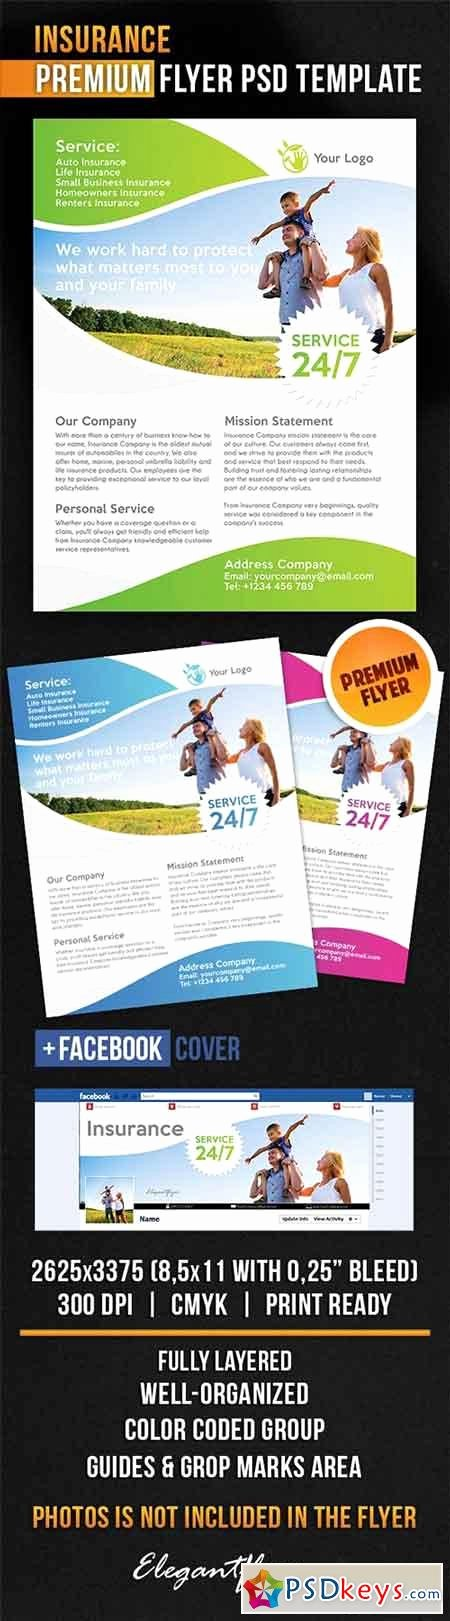 Insurance Flyer Psd Template Cover Free